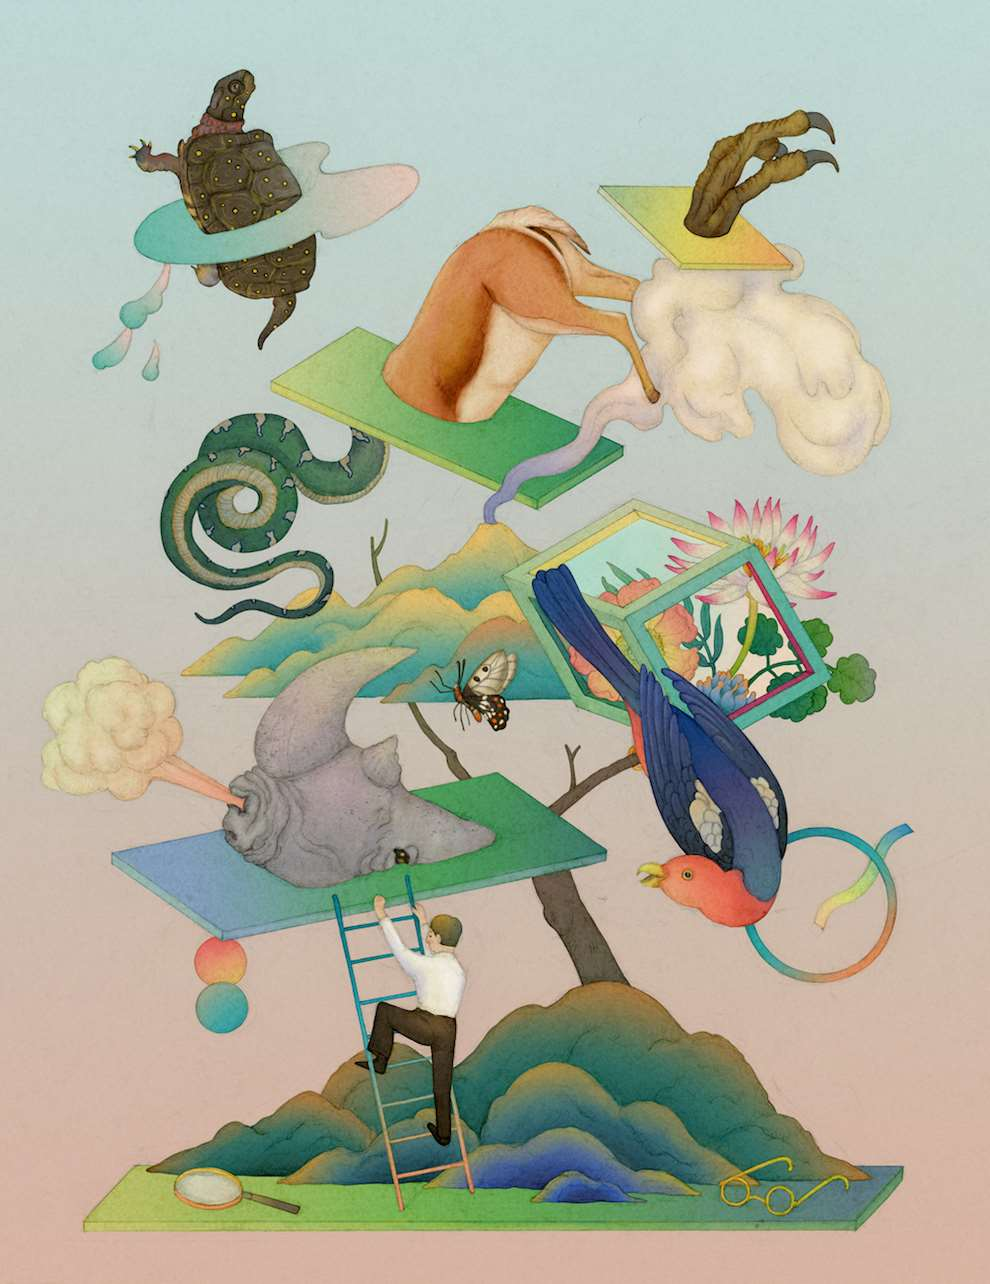 Whooli Chen, Mesmerizing conceptual watercolour illustration of animals floating